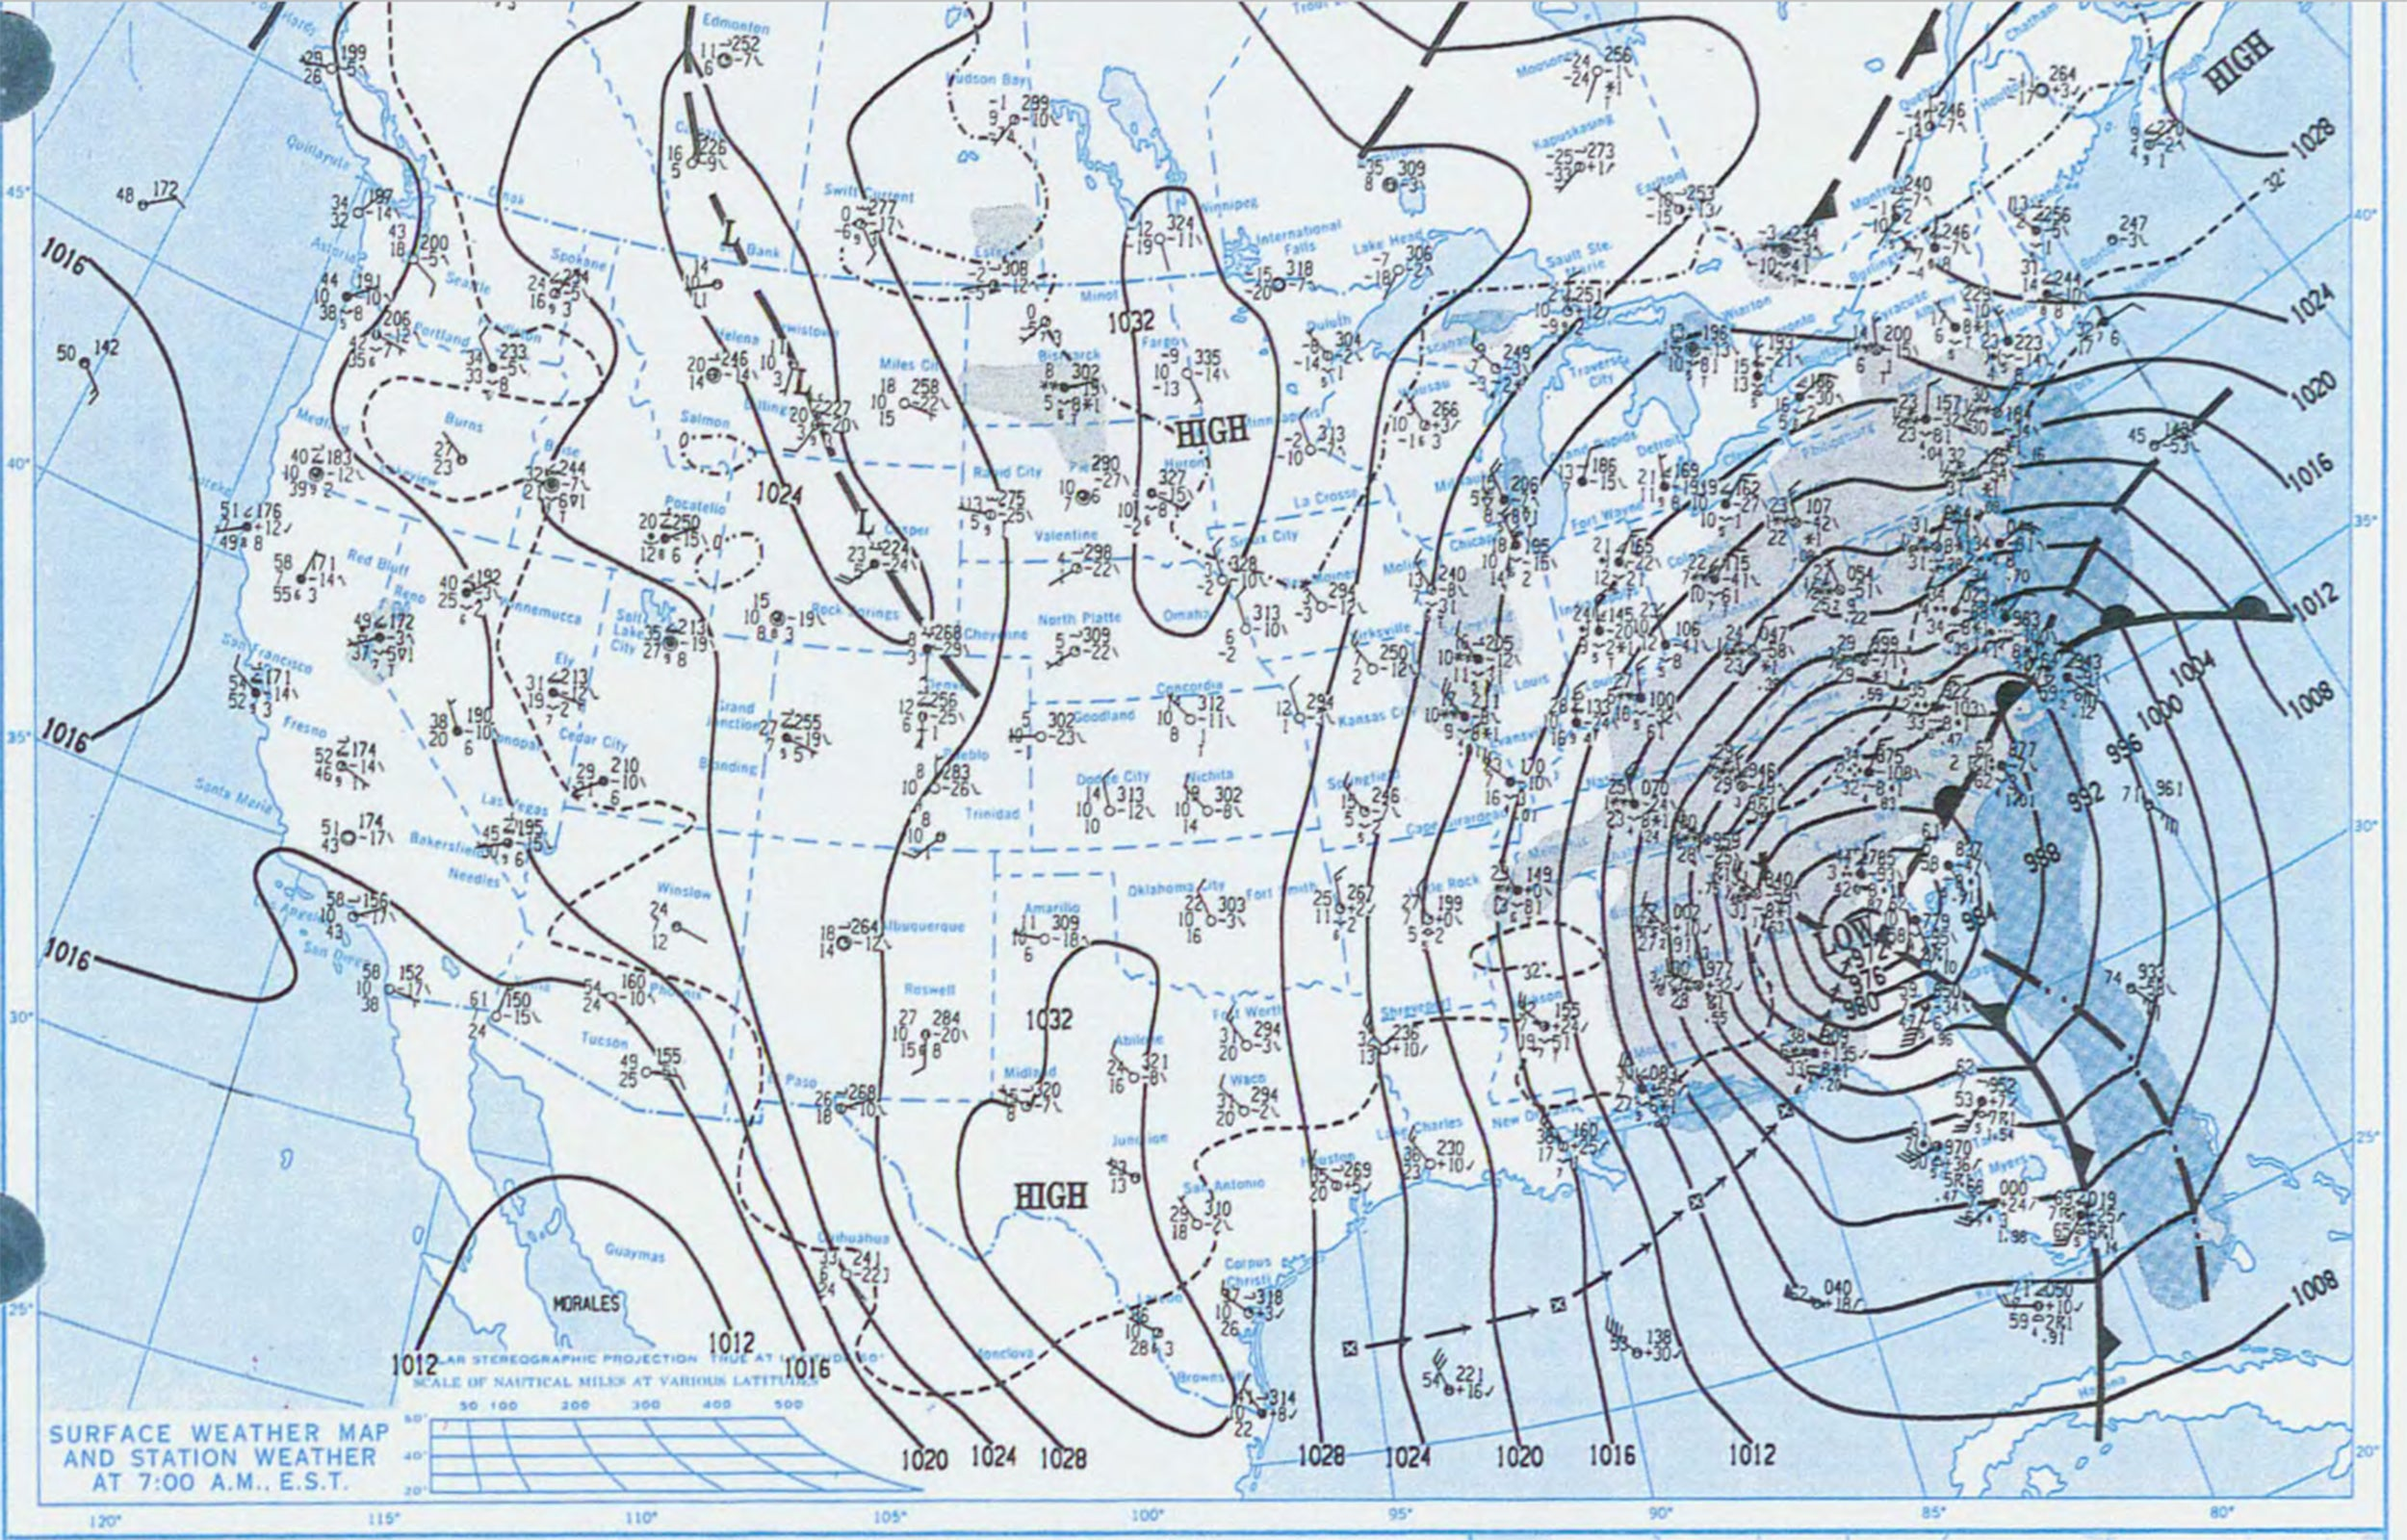 The historic superstorm of March 1993